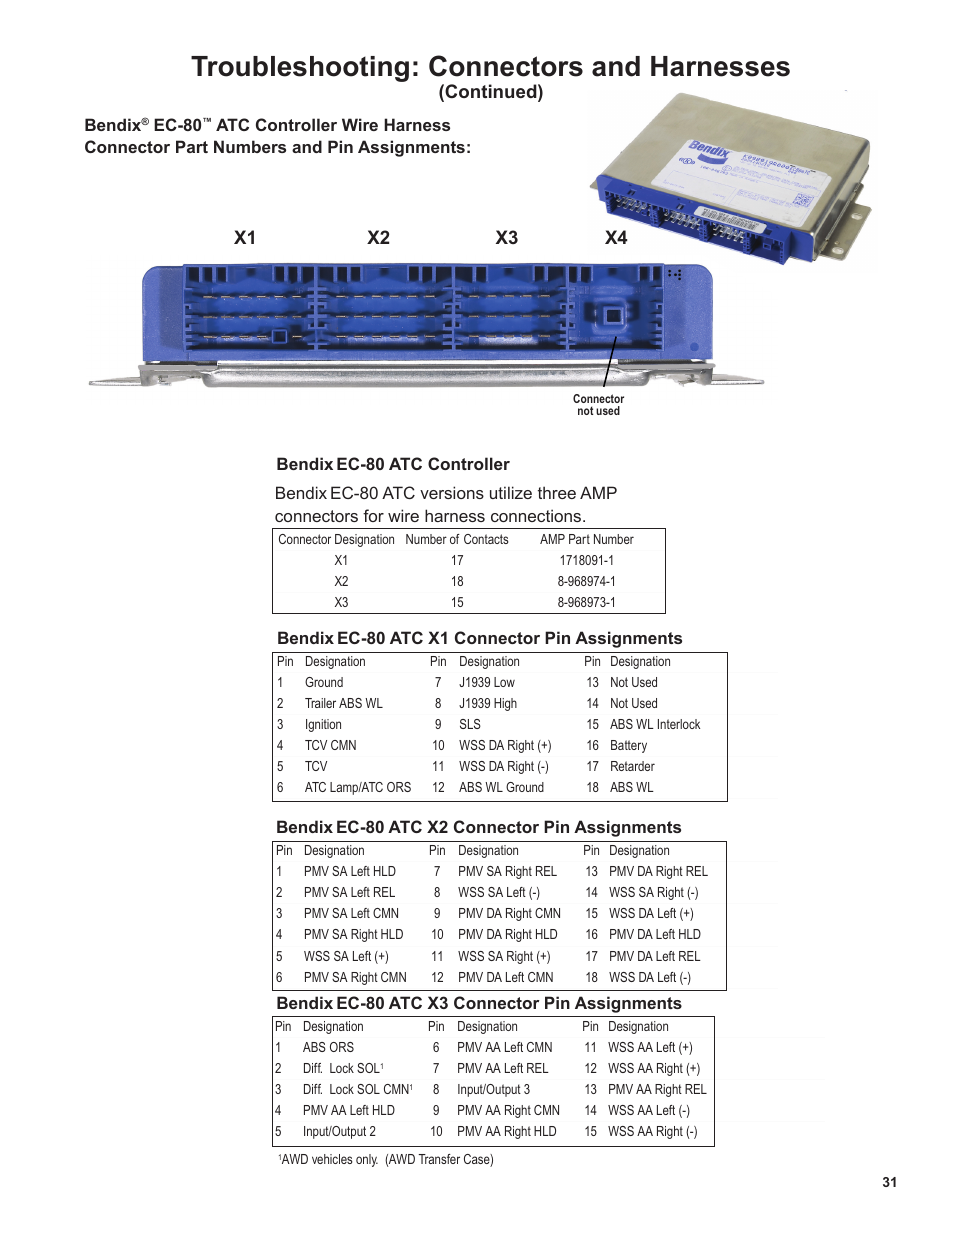 Troubleshooting Connectors And Harnesses X1 X4 X2 X3 Continued 3 Pin Wire Harness Connector Bendix Commercial Vehicle Systems Ec 80 Abs Atc Sd User Manual Page 31 44